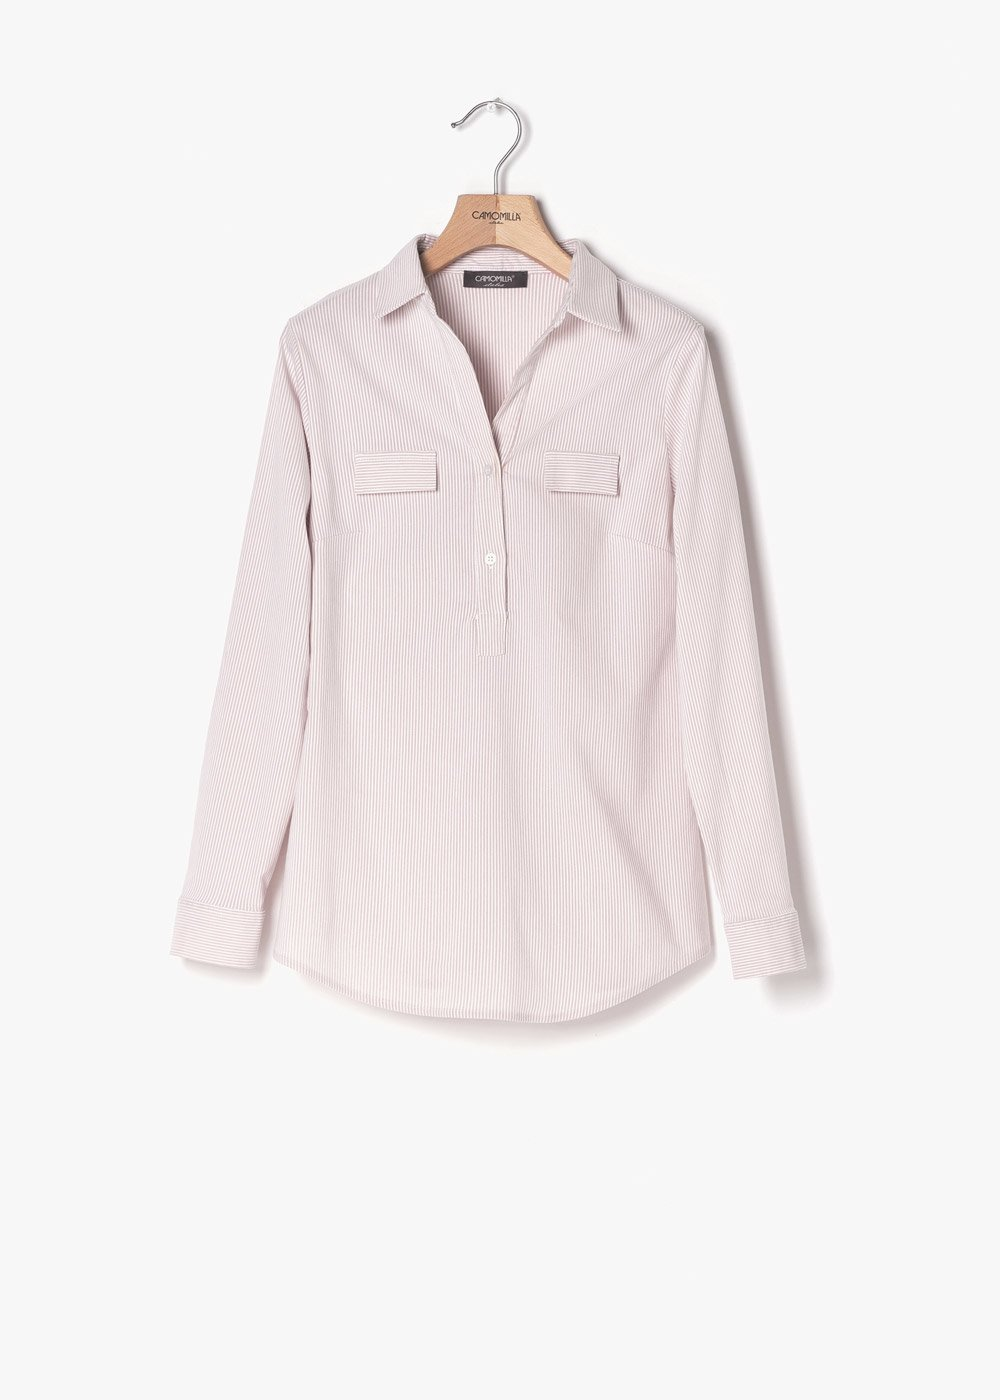 Paola shirt on striped fabric - Rosa / White Stripes - Woman